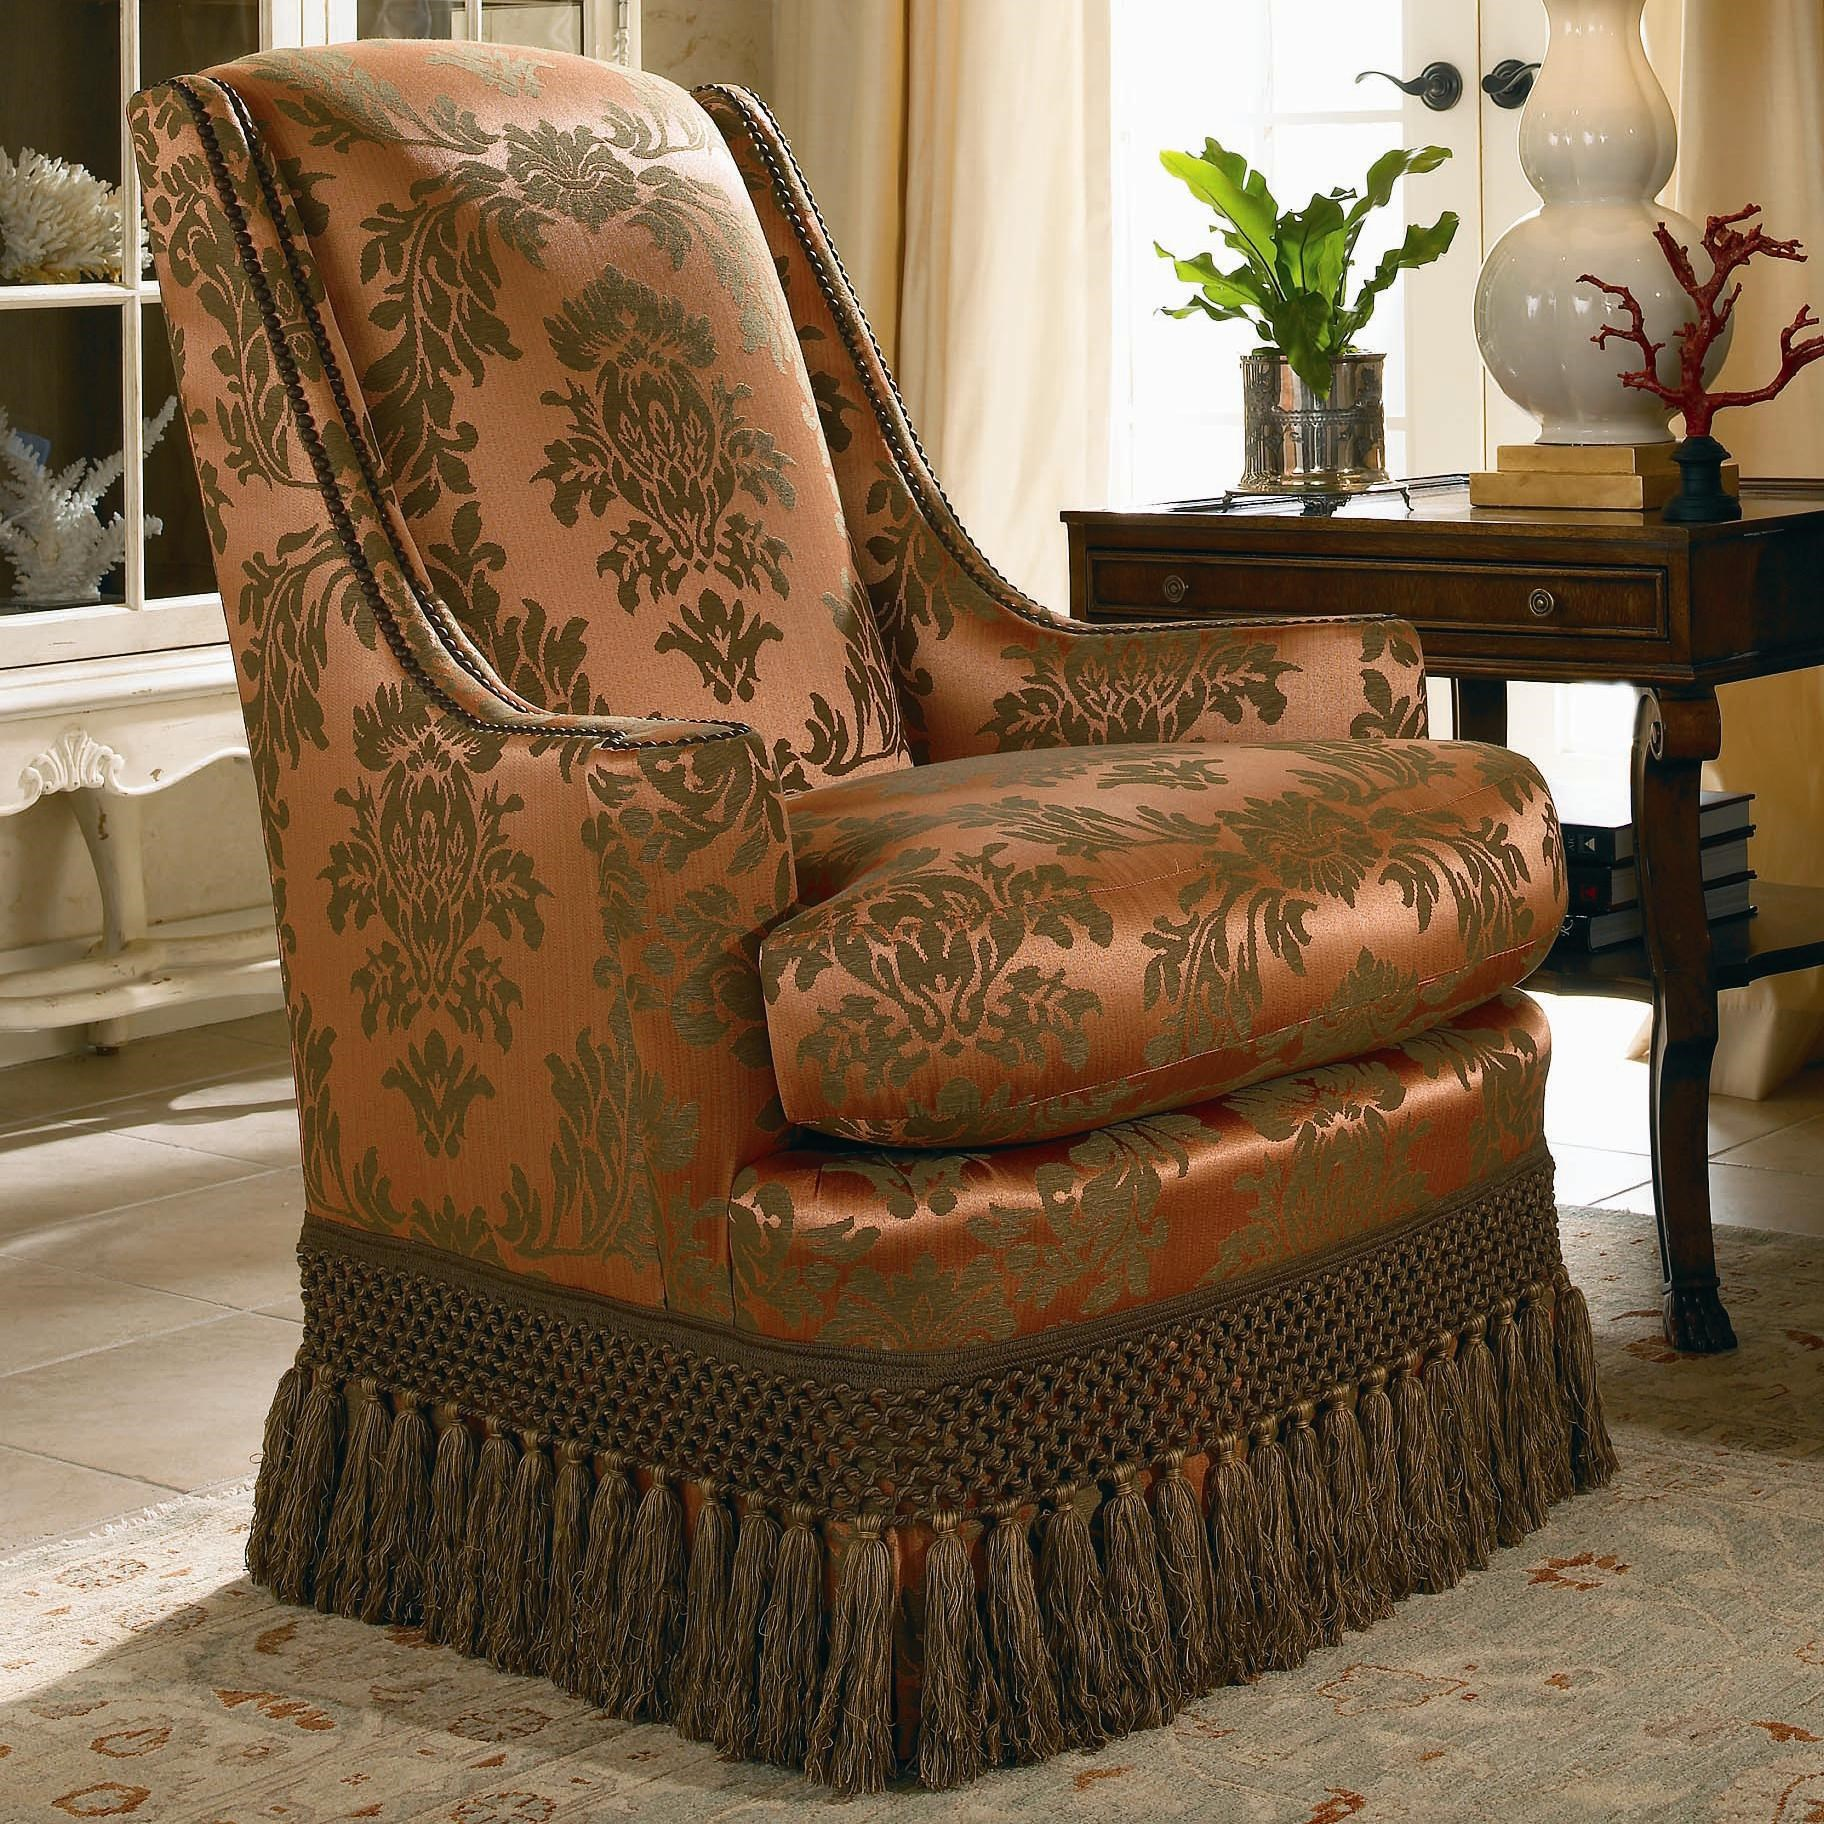 Century Signature Upholstered Accents High Back Upholstered Chair With  Tassels On Base